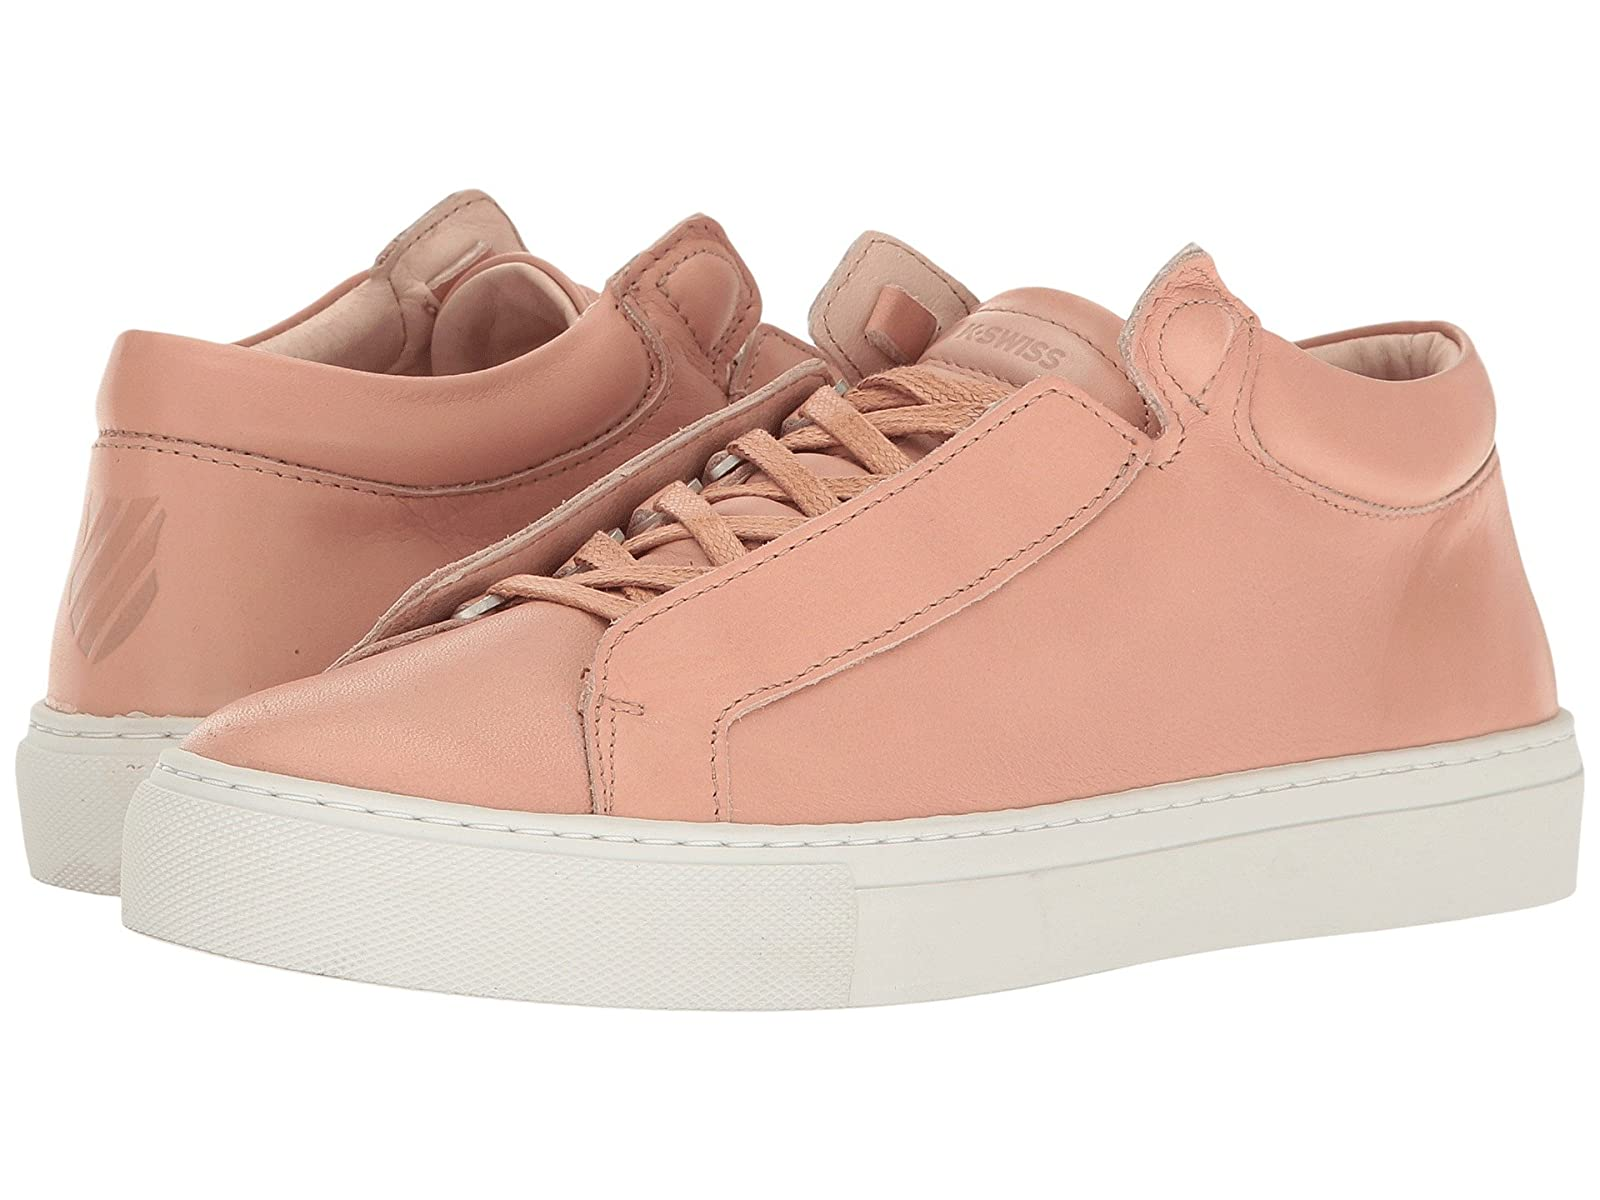 Mr/Ms:K-Swiss Novo Demi : Selling Store Online Store Selling a11542